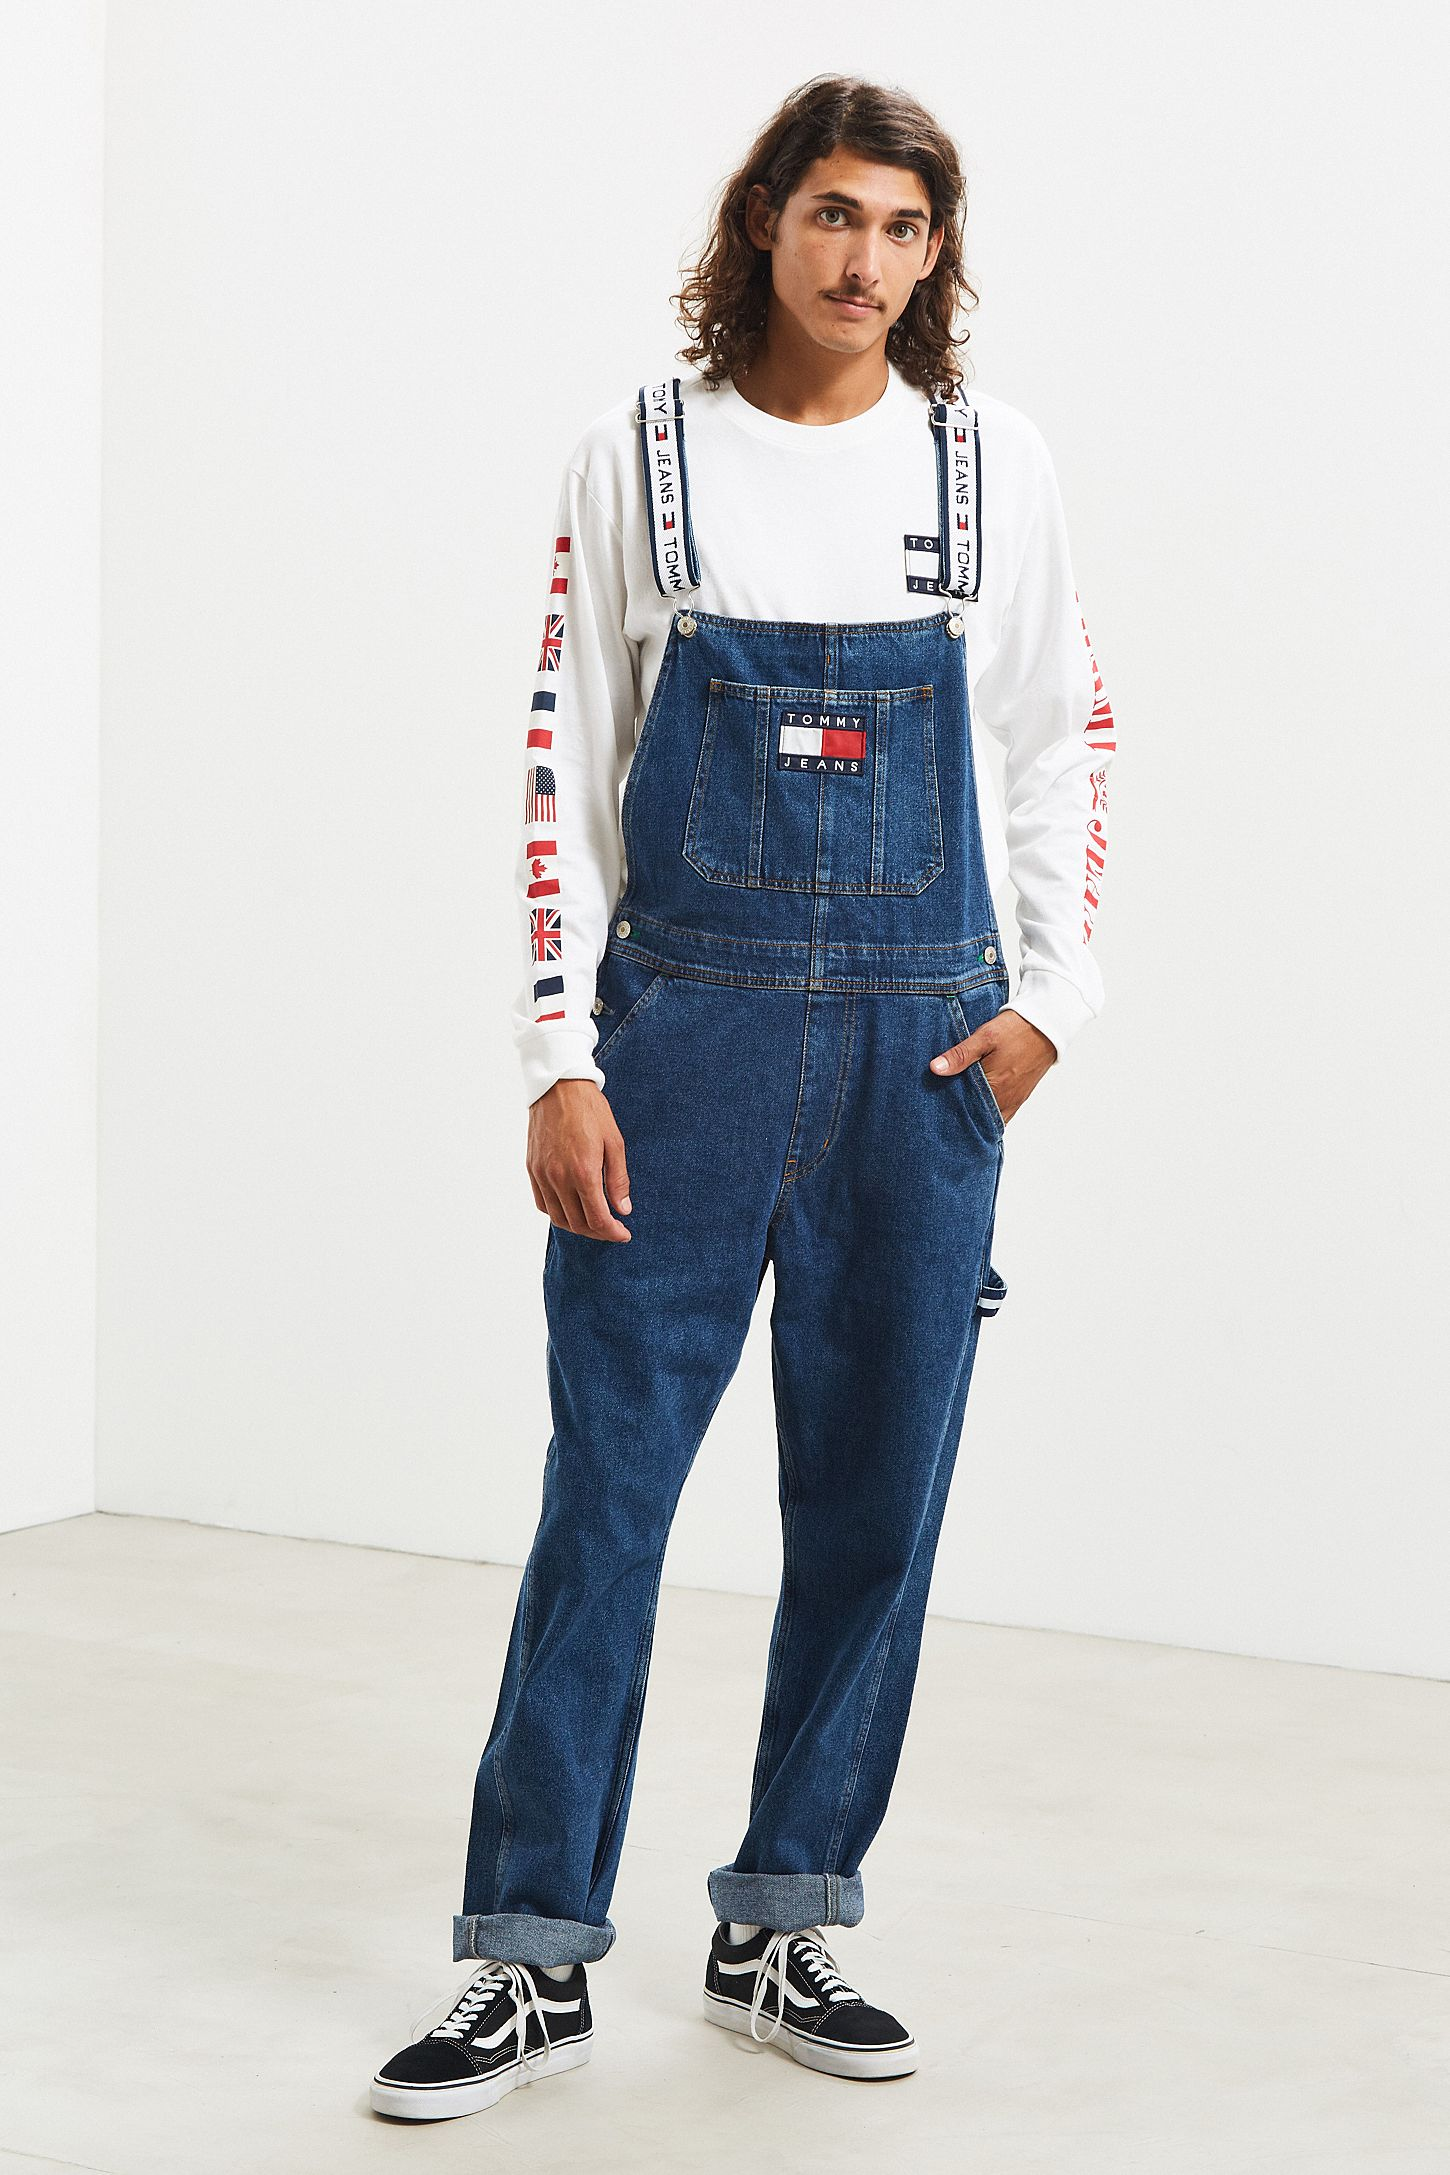 b430d5f00b0 Get Our Emails. Sign up to receive Urban Outfitters ...